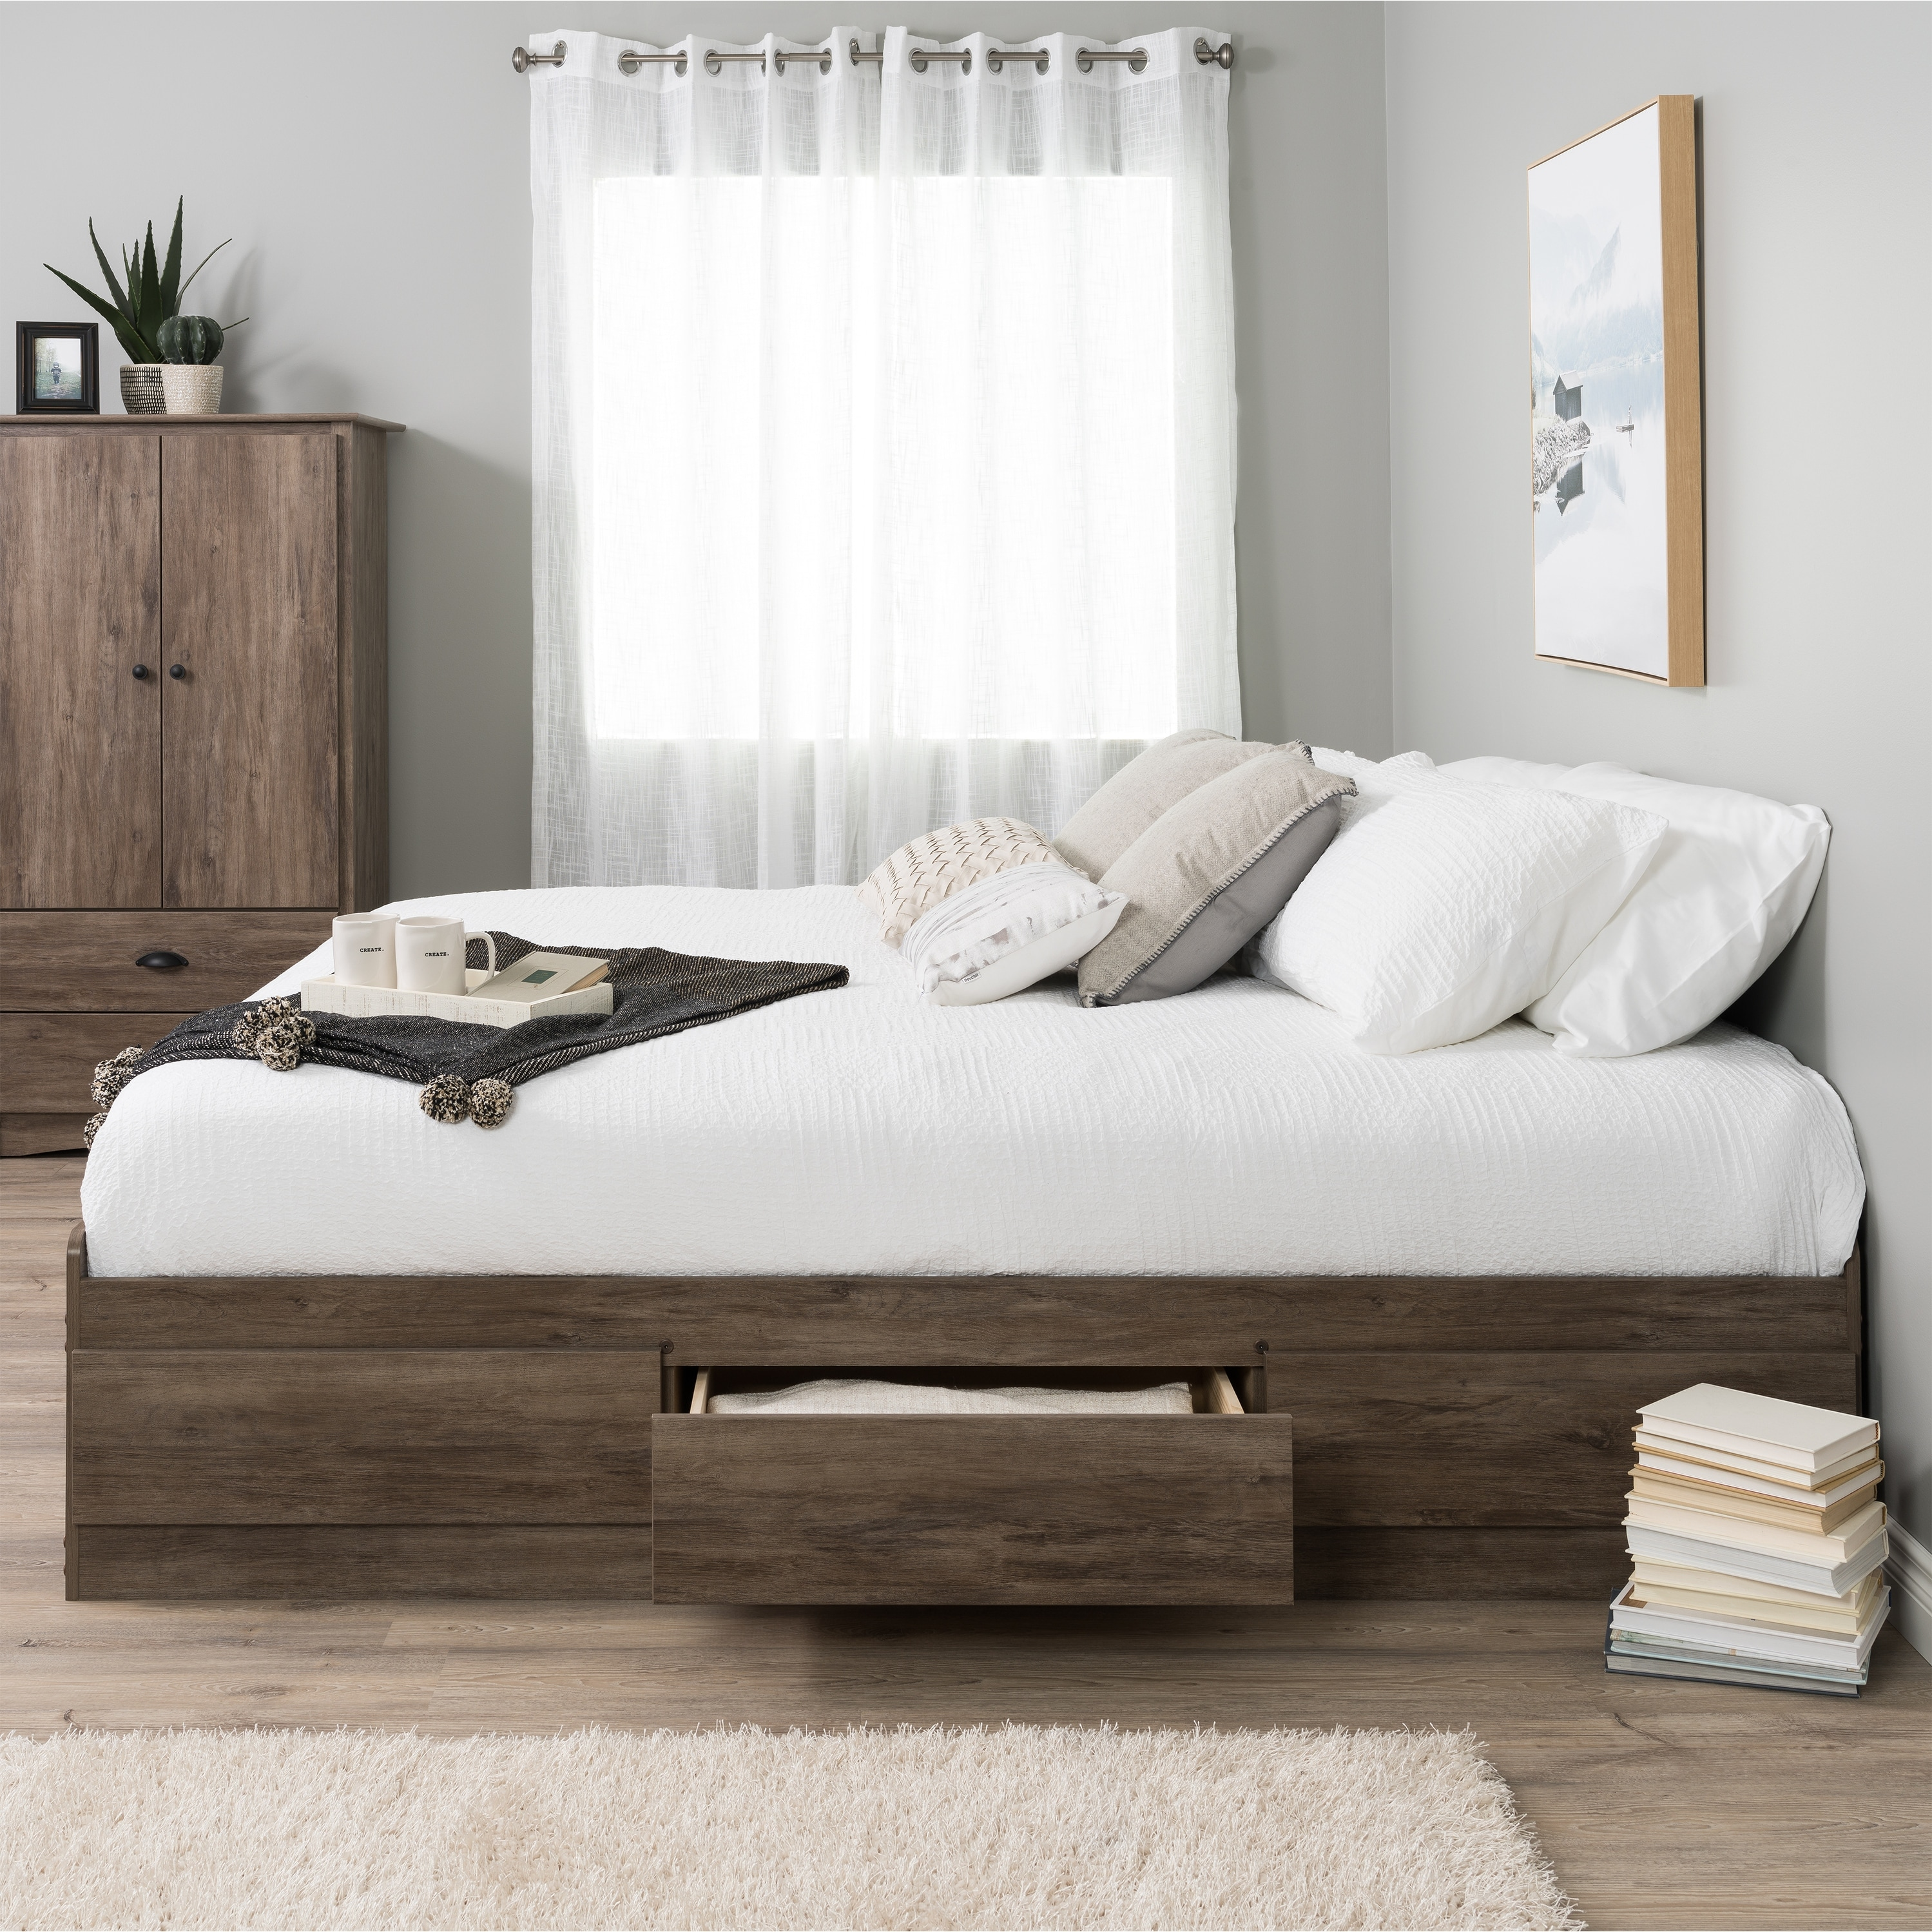 Shop Prepac Mate S Platform Storage Bed With 6 Drawers On Sale Overstock 2460975